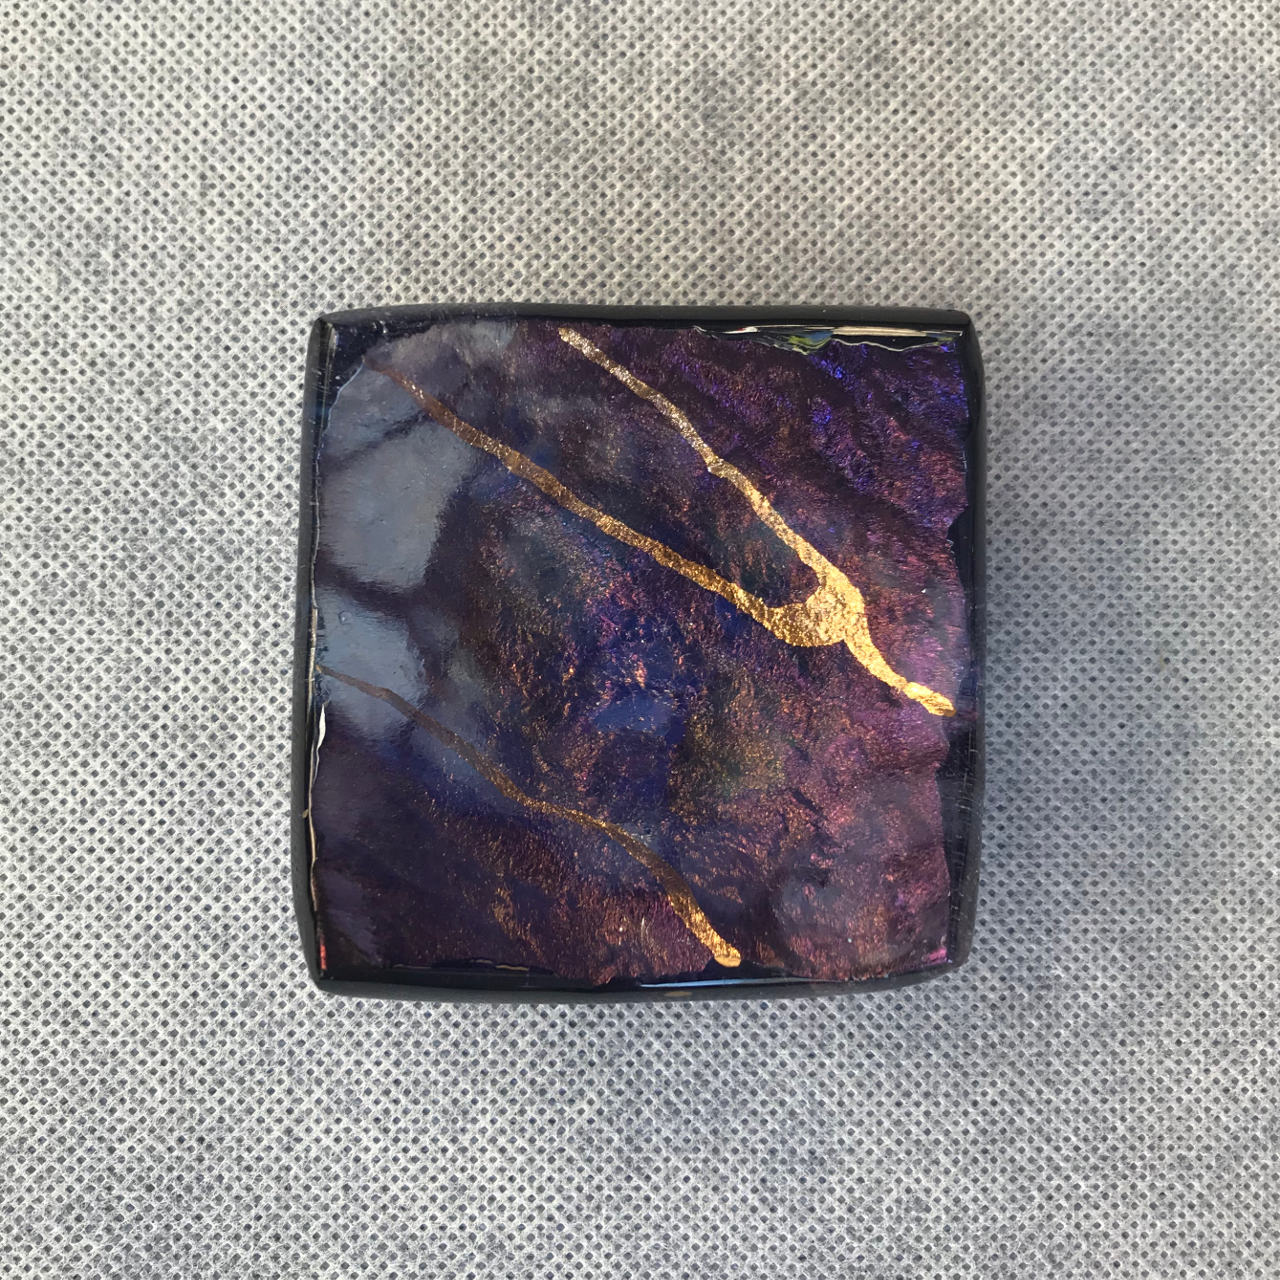 Hawai'i Lava Ring Tray by Marian Fieldson. Lava flow-molded functional glass art with 22K gold accents handmade on Hawai'i.